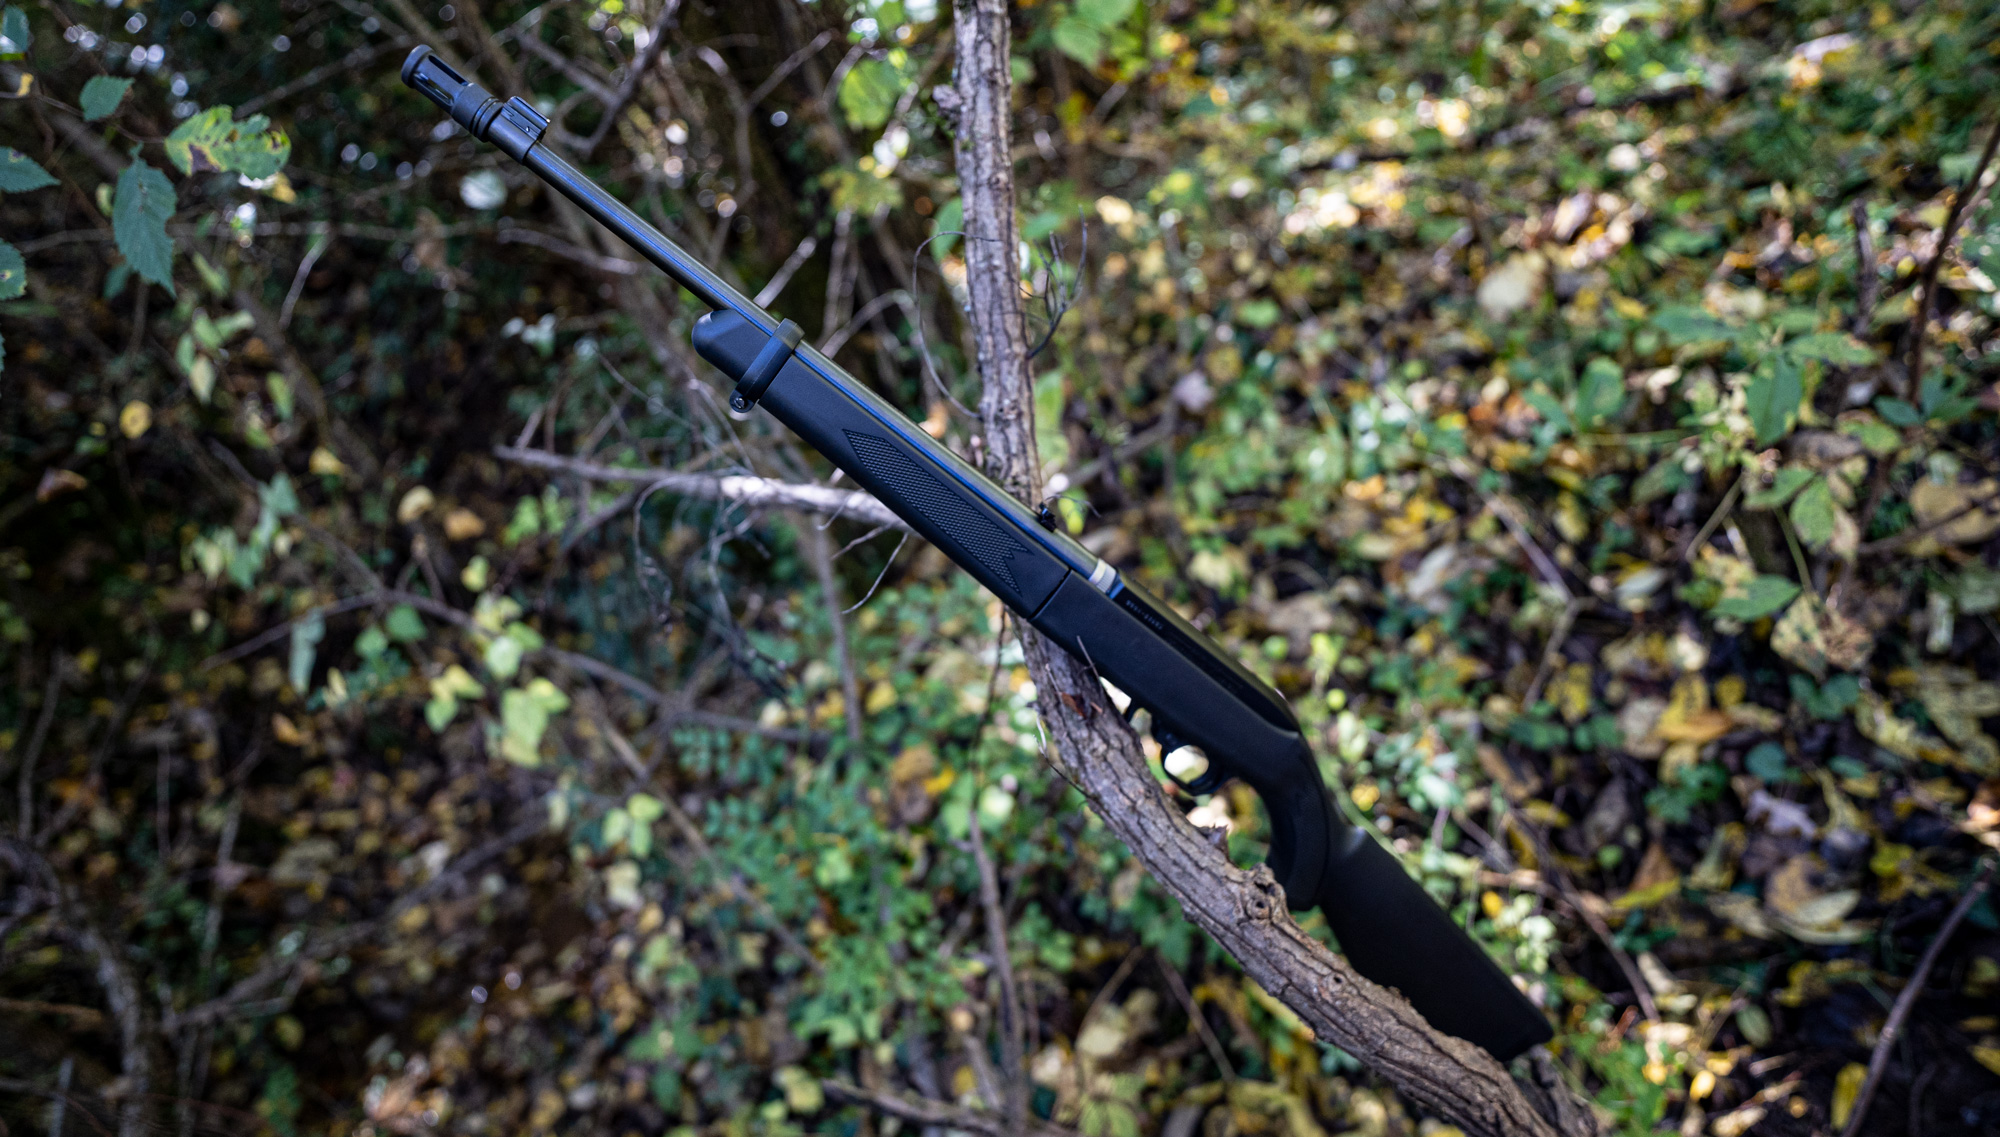 The Ruger 10-22, a very popular first rifle option for American shooters